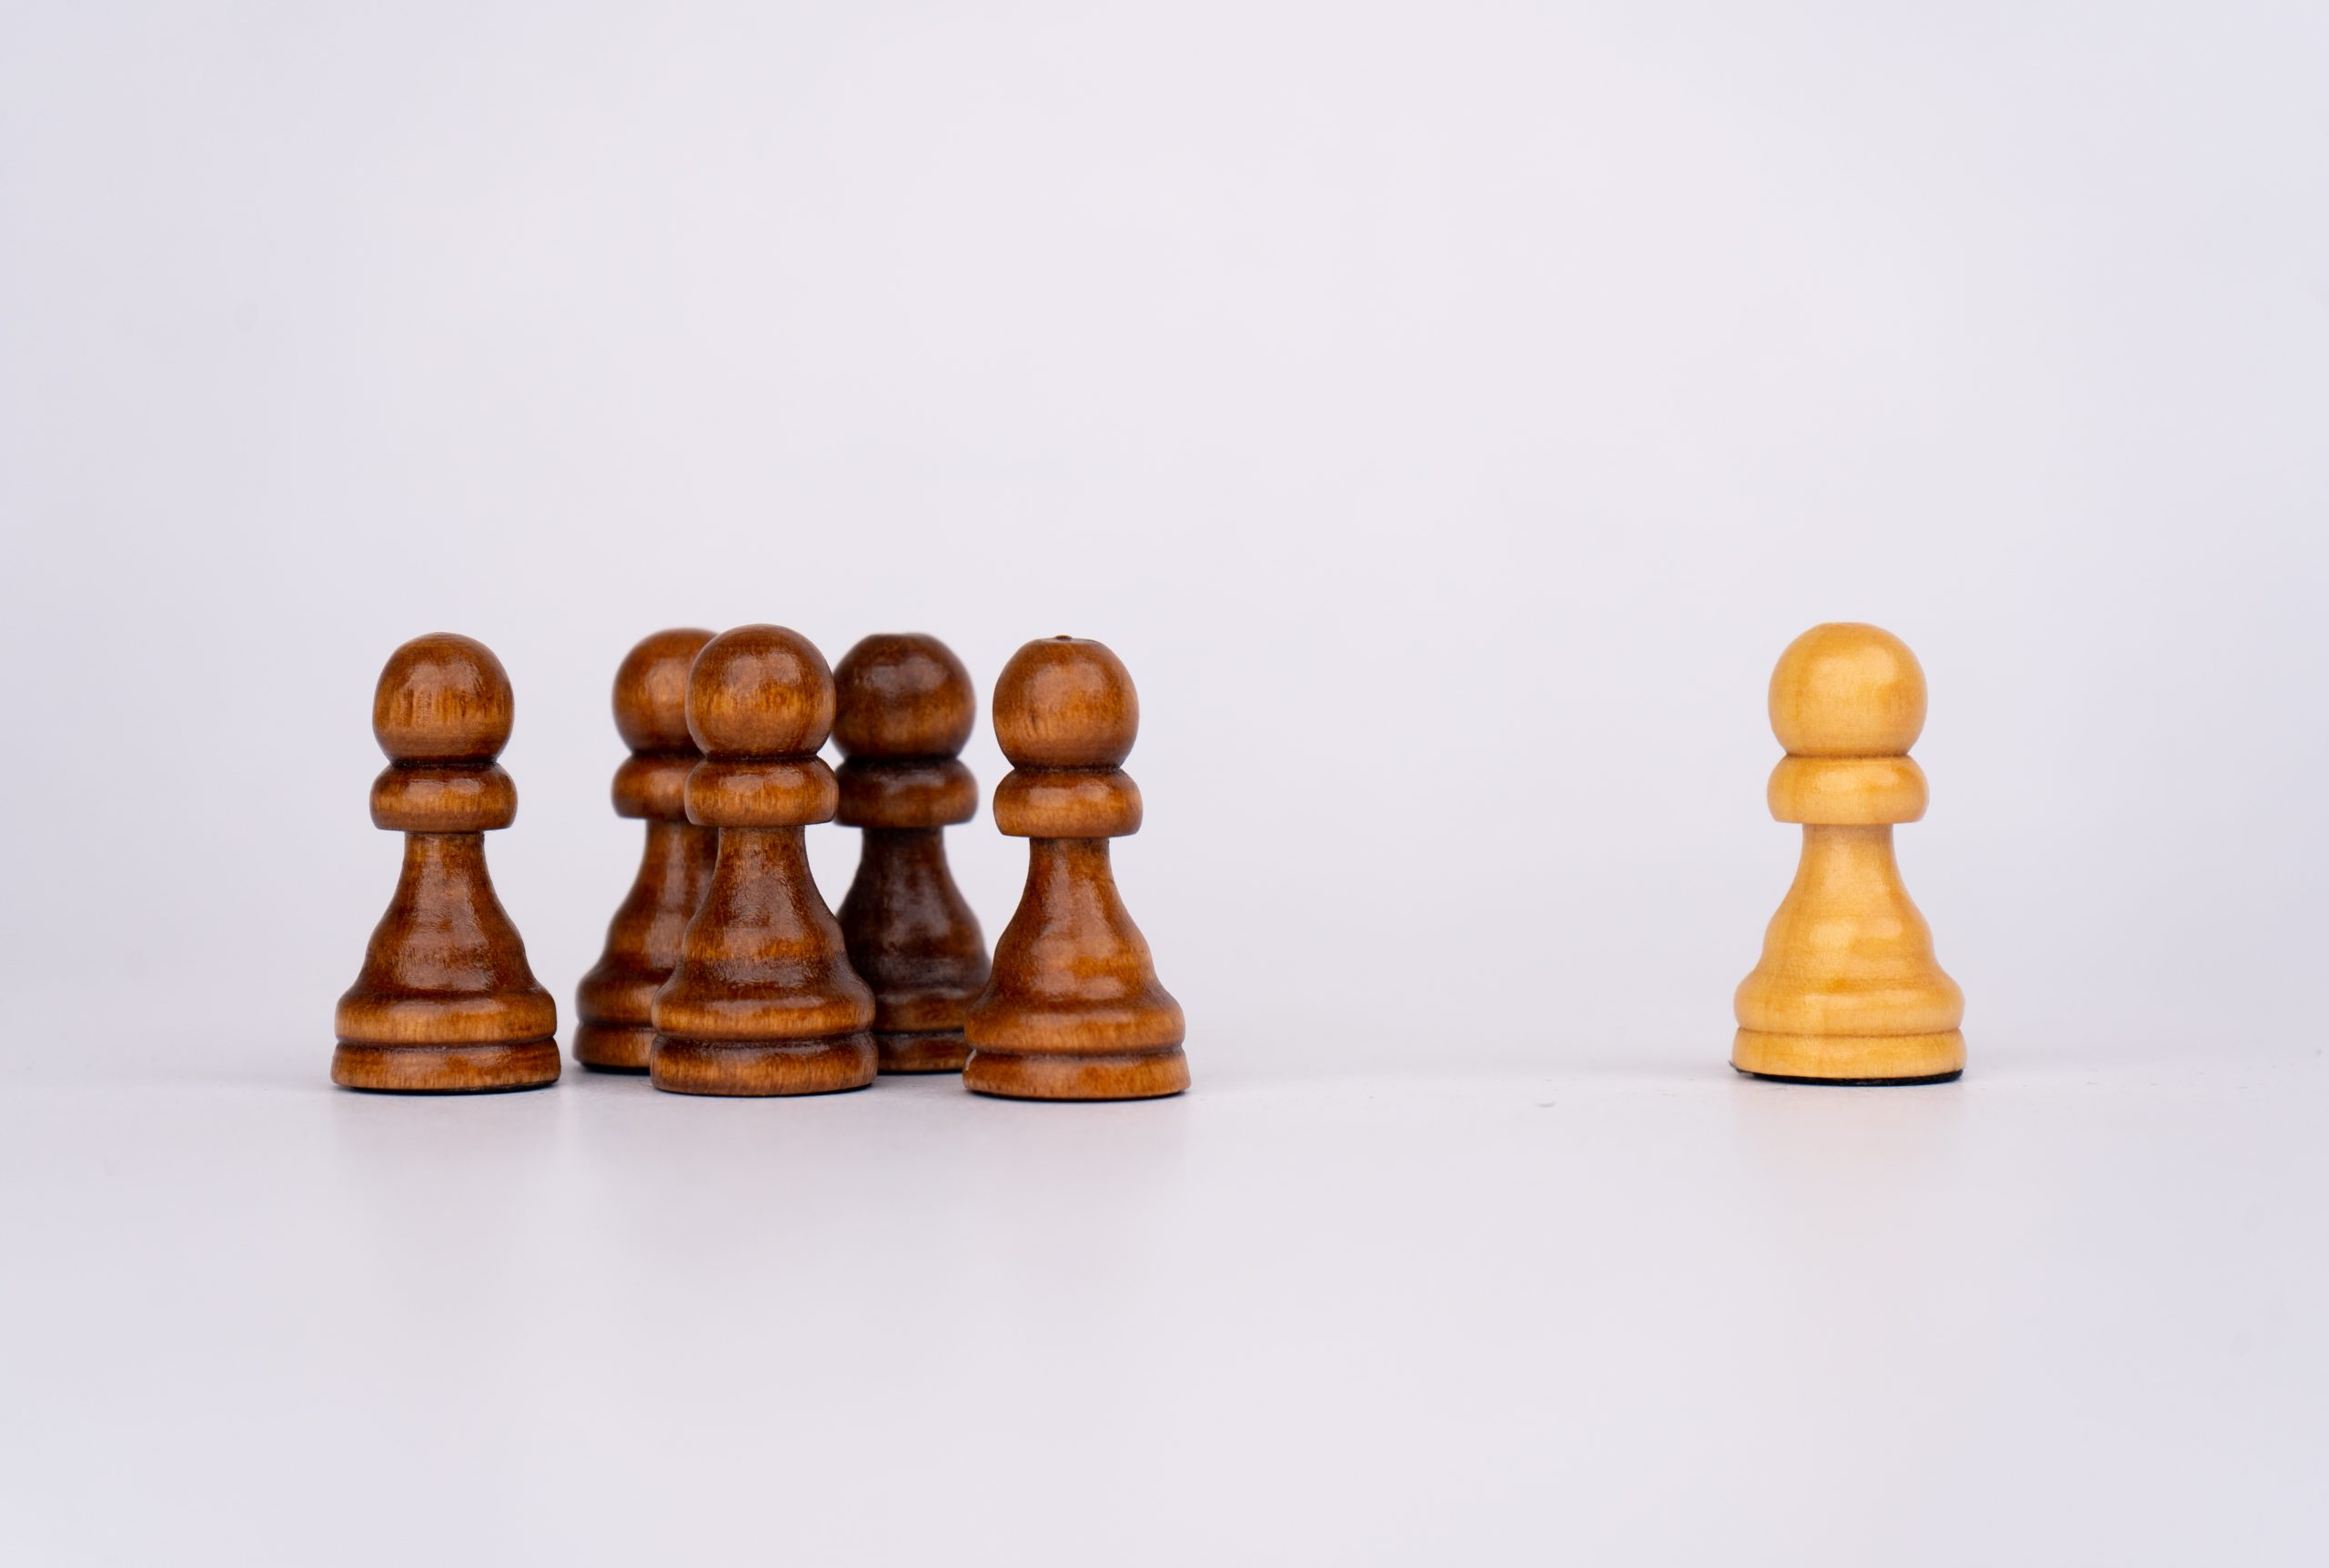 White pawn stands against crowd of black pawns